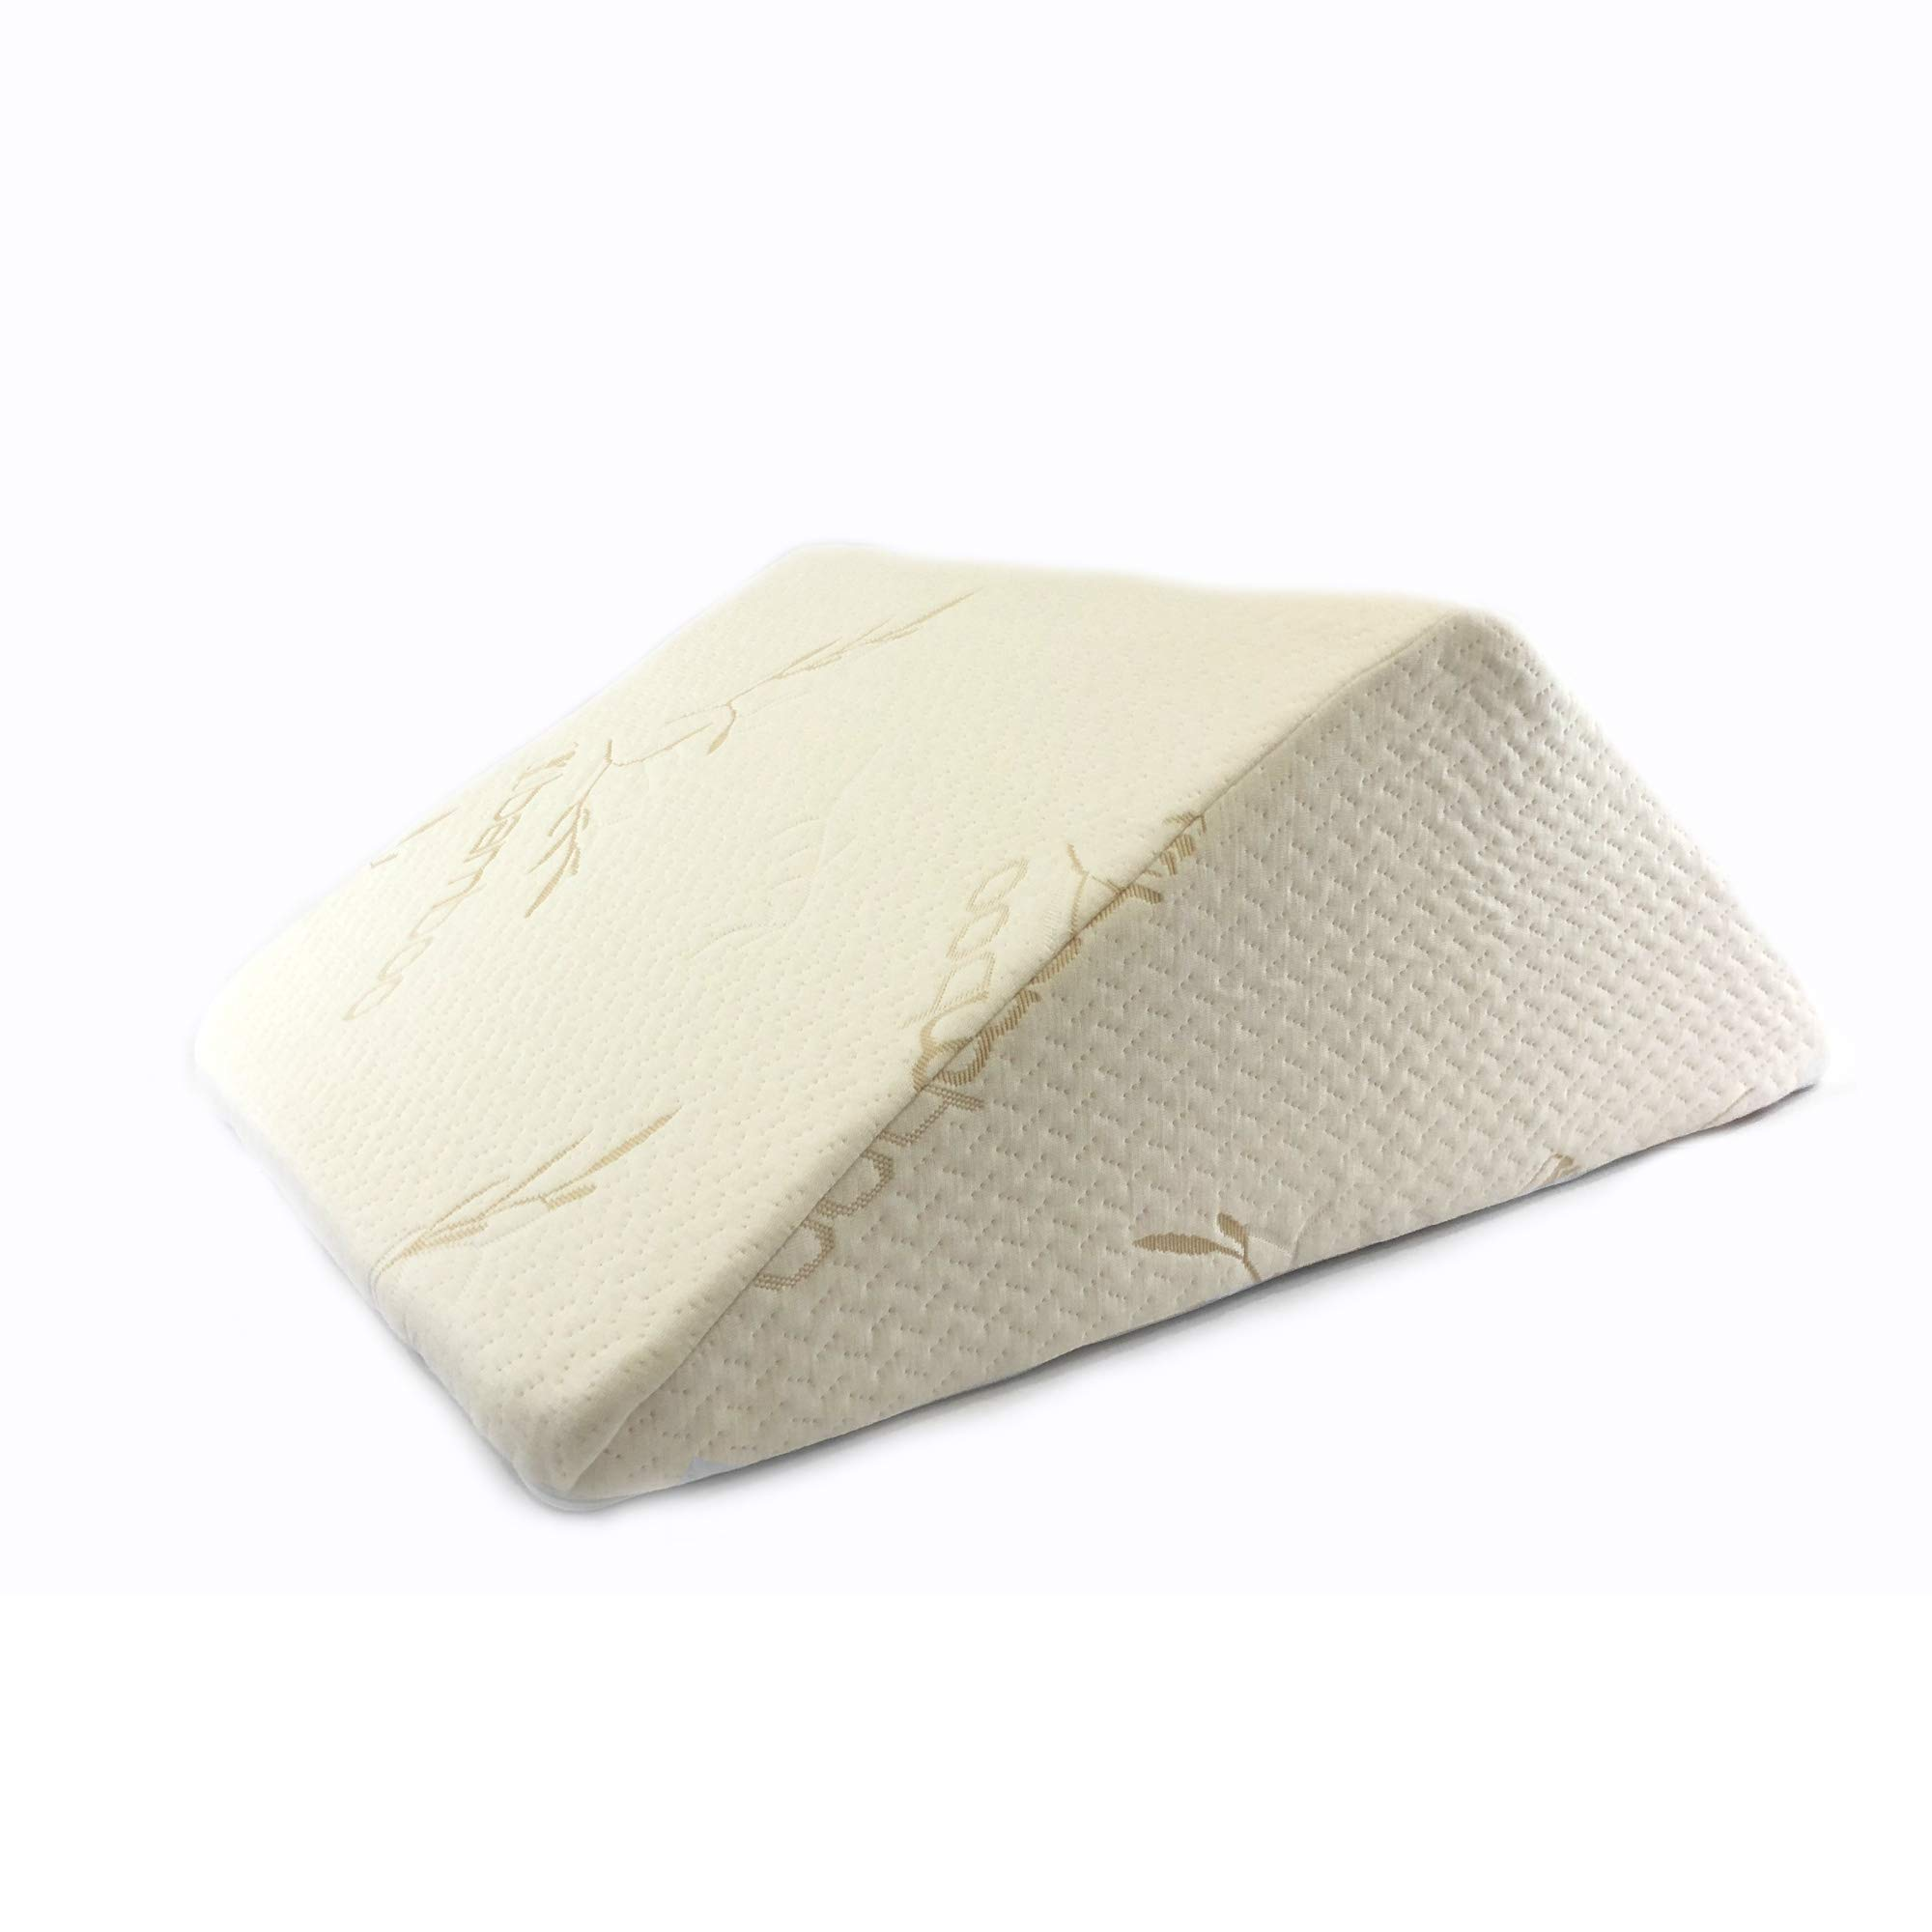 The Angle by Back Support Systems - Guaranteed to Help Reduce Back Pain Immediately. Eco Friendly, Medical Quality Memory Foam Bed Wedge Leg Pillow for Reducing Back Pain, Back Therapy and Sleeping by Back Support Systems (Image #1)